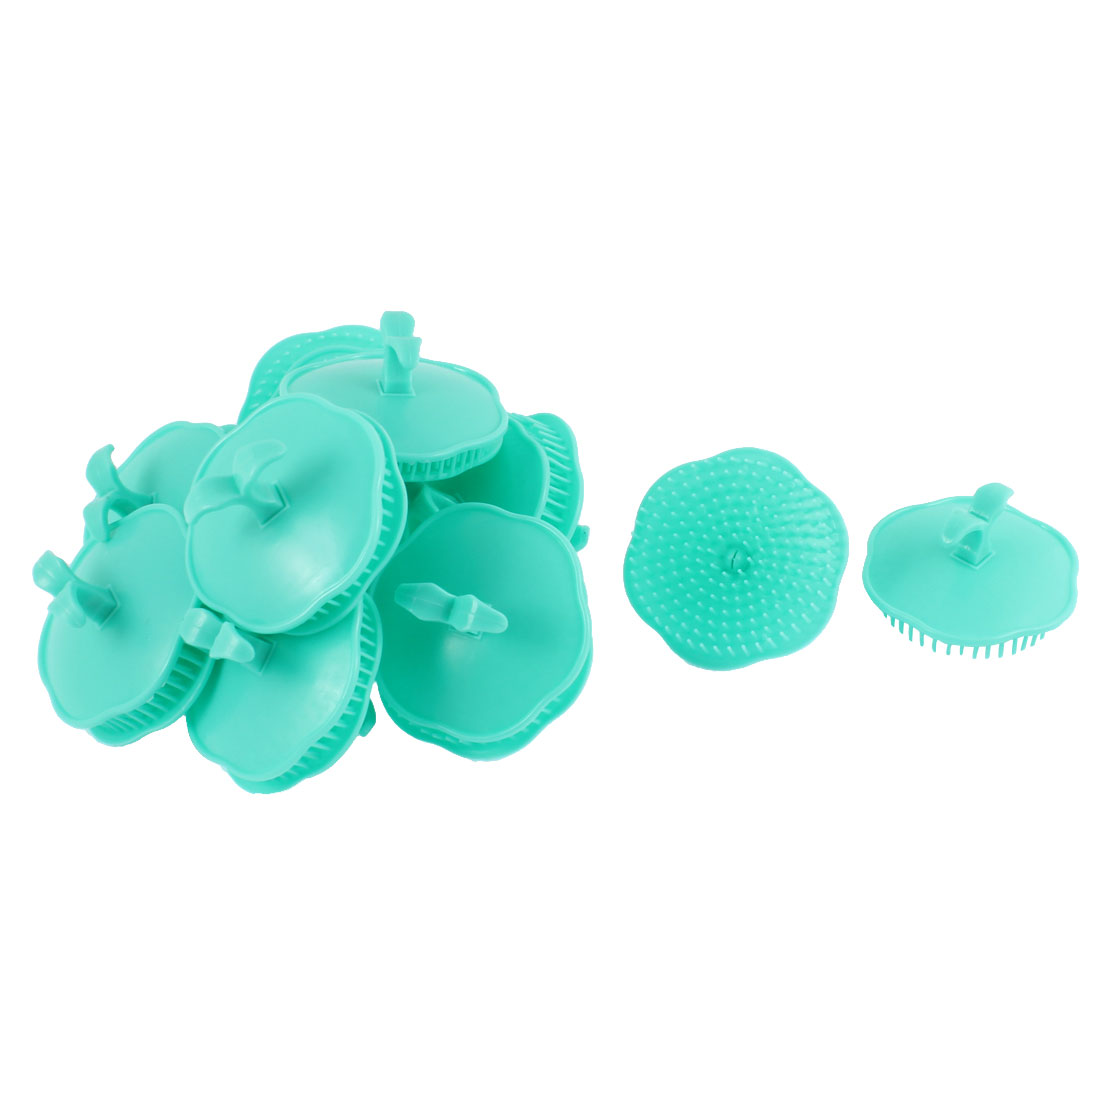 Shampoo Scalp Hair Conditioner Head Massage Comb Brush Cyan Color 20Pcs